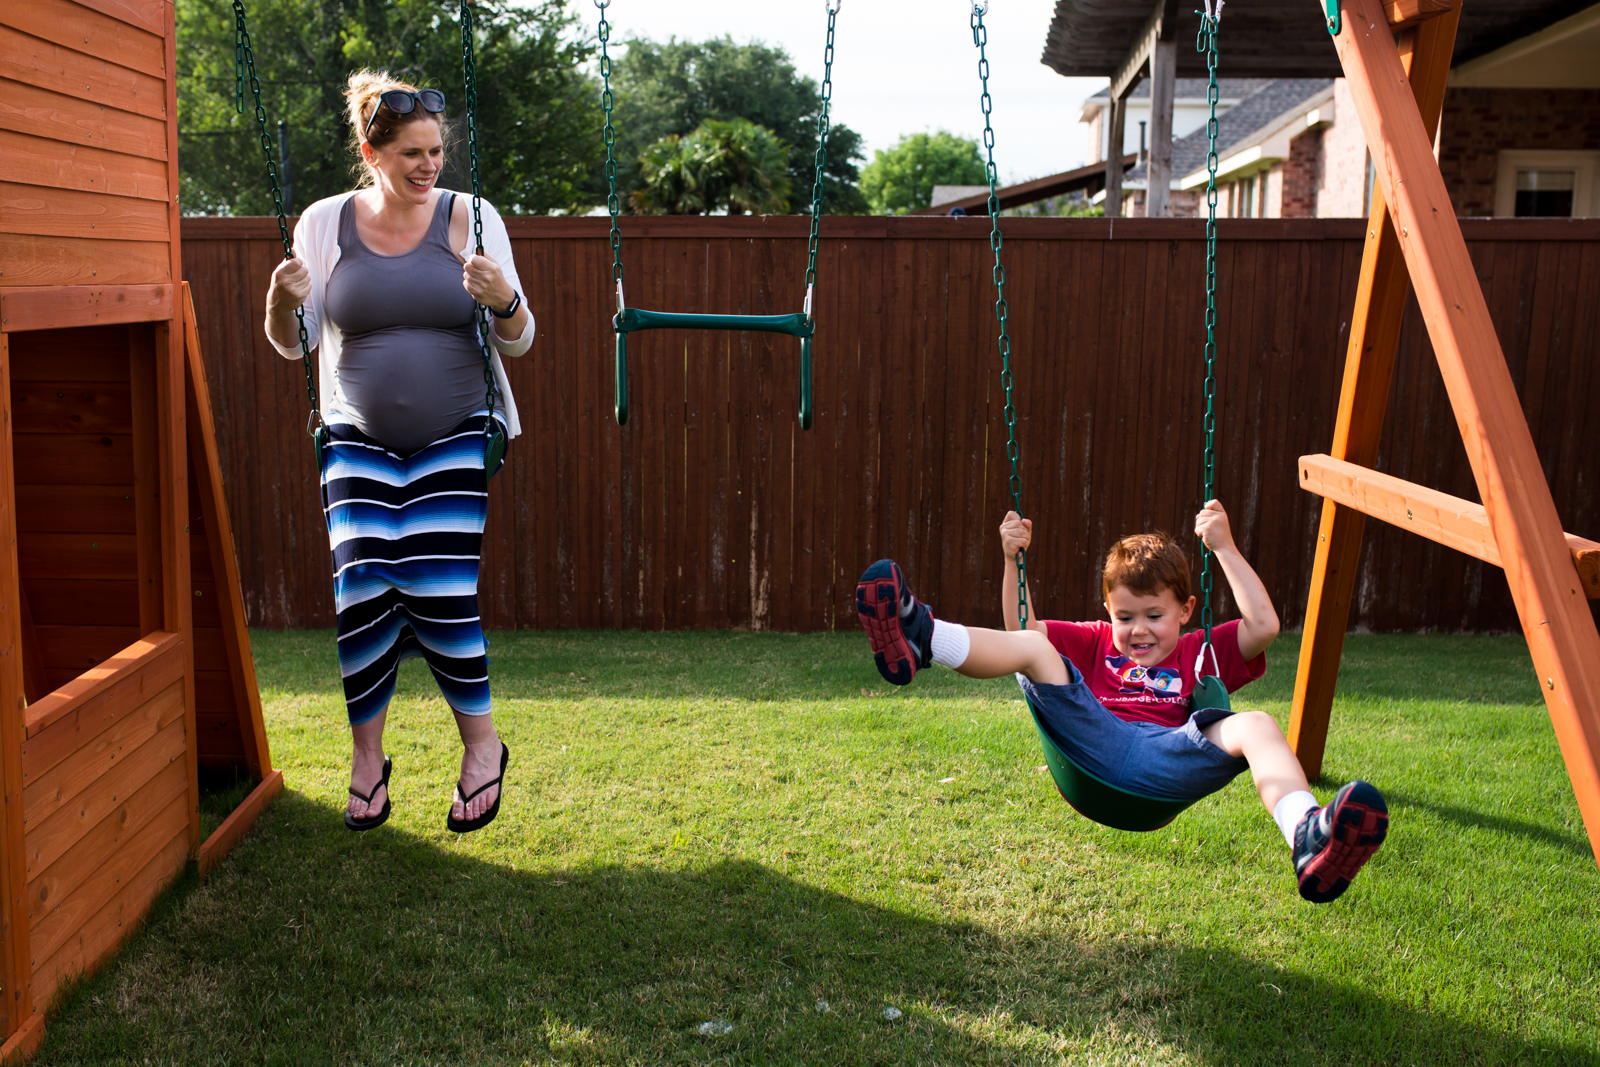 Lawren Rose Photography captures a photo of a pregnant Mom swinging on a swing set with her 4 year old son who is acting goofy